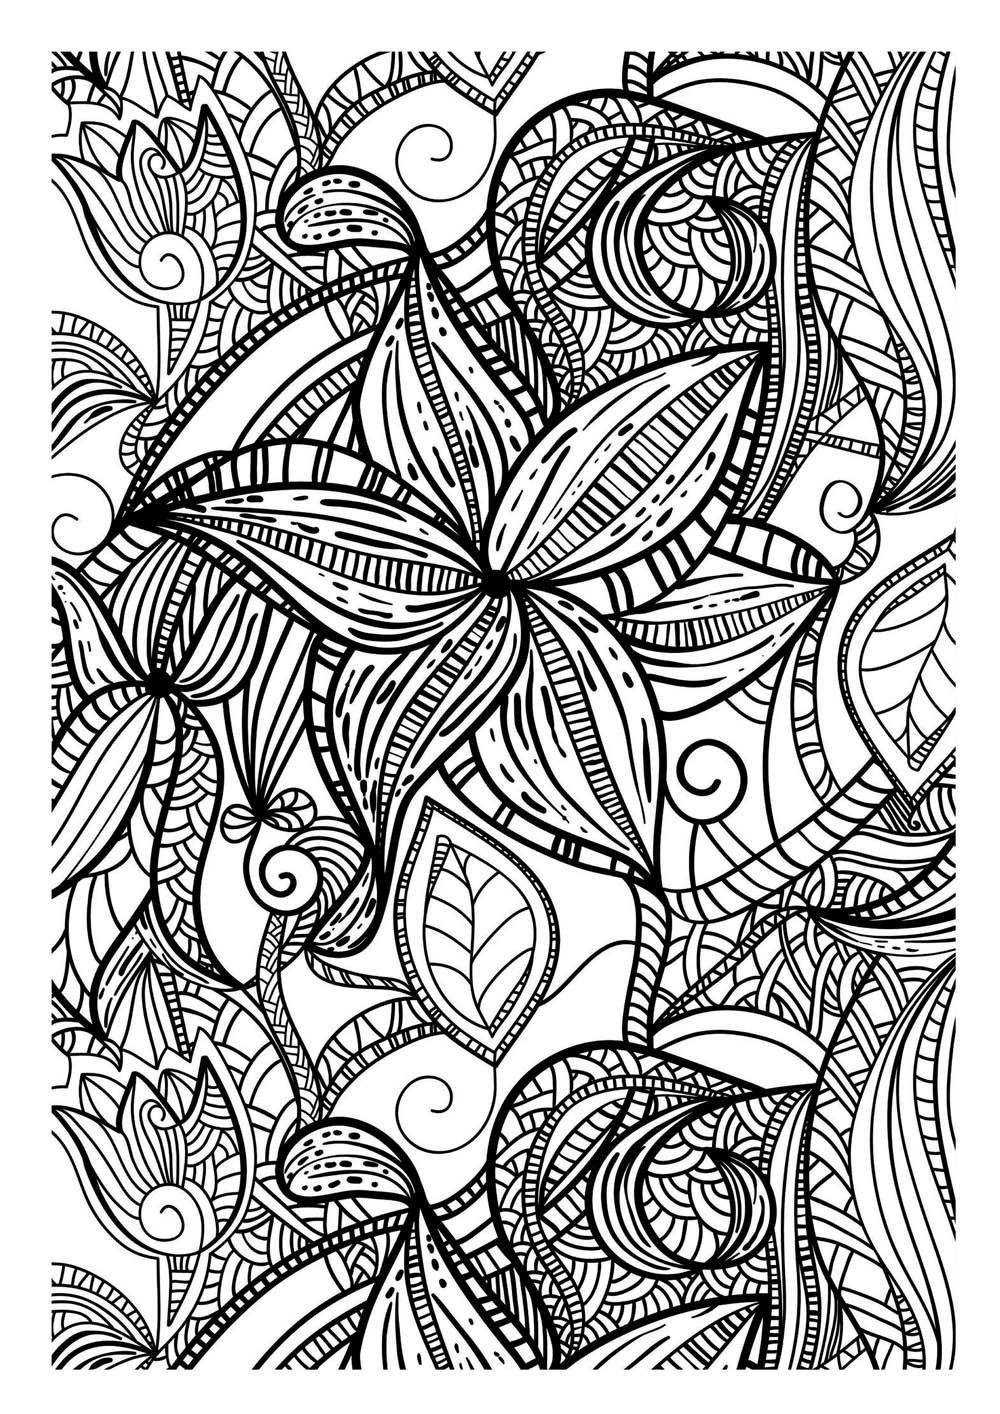 Art thérapie 100 coloriages anti stress Amazon Collectif Livres kleurplaten coloring pages Pinterest